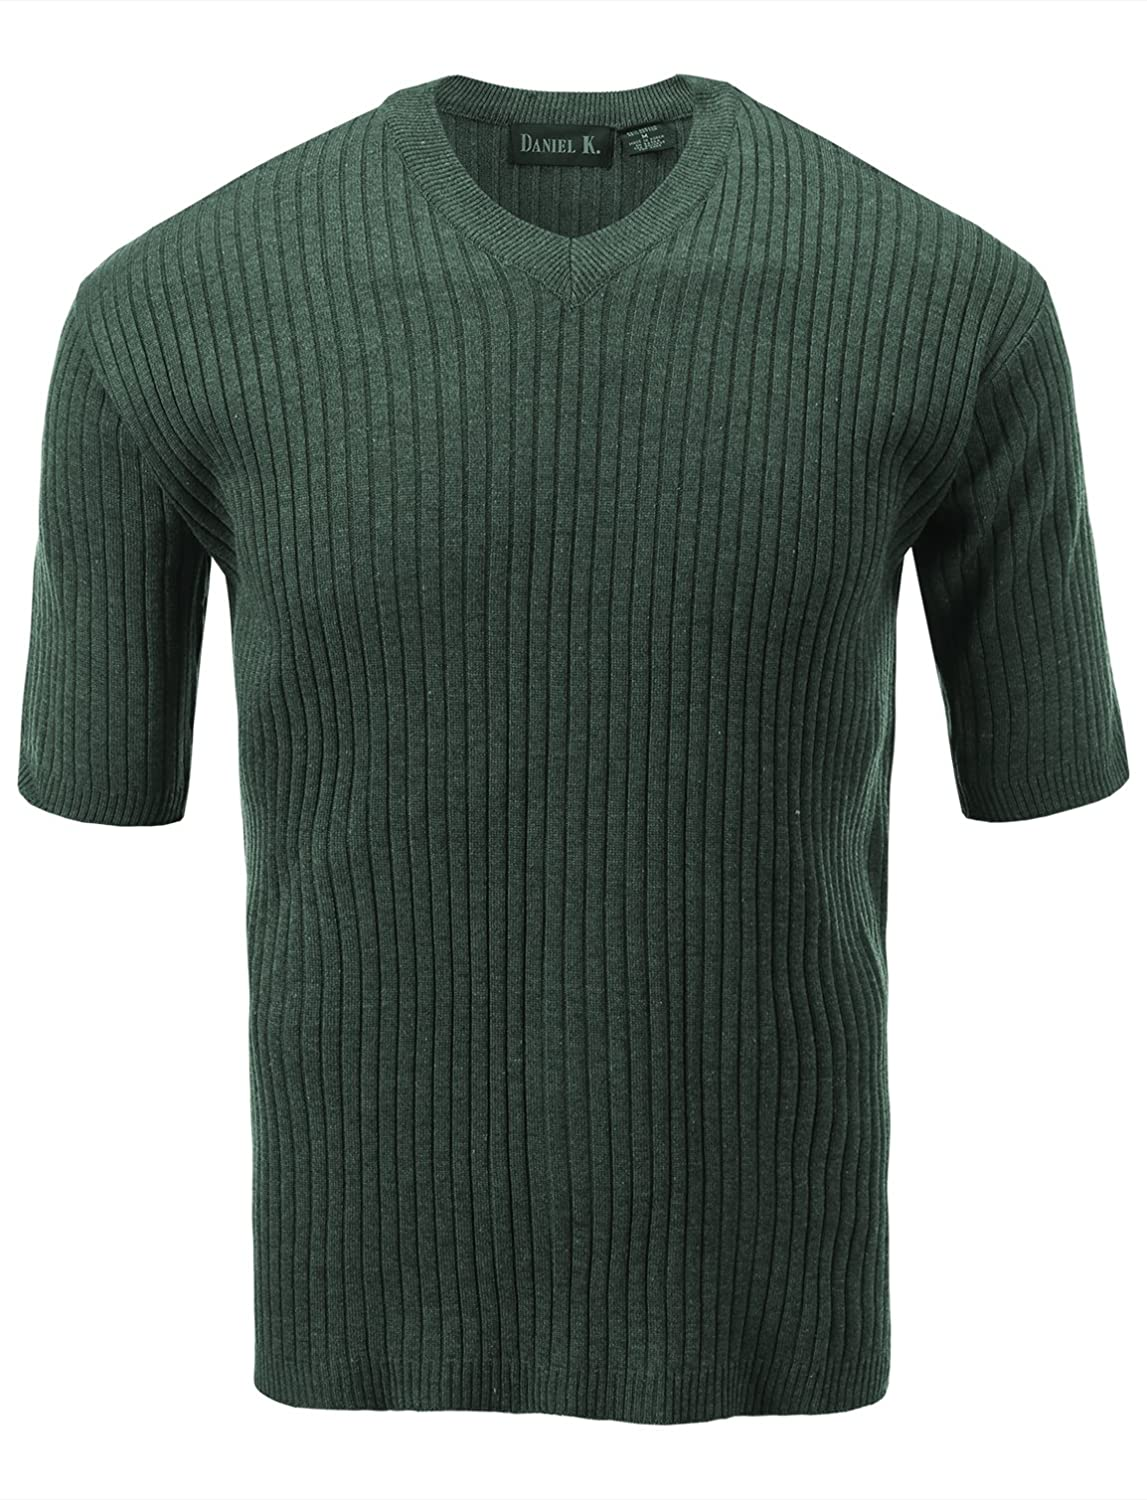 7Encounter Men's V Neck Short Sleeve Large Ribbed Sweater